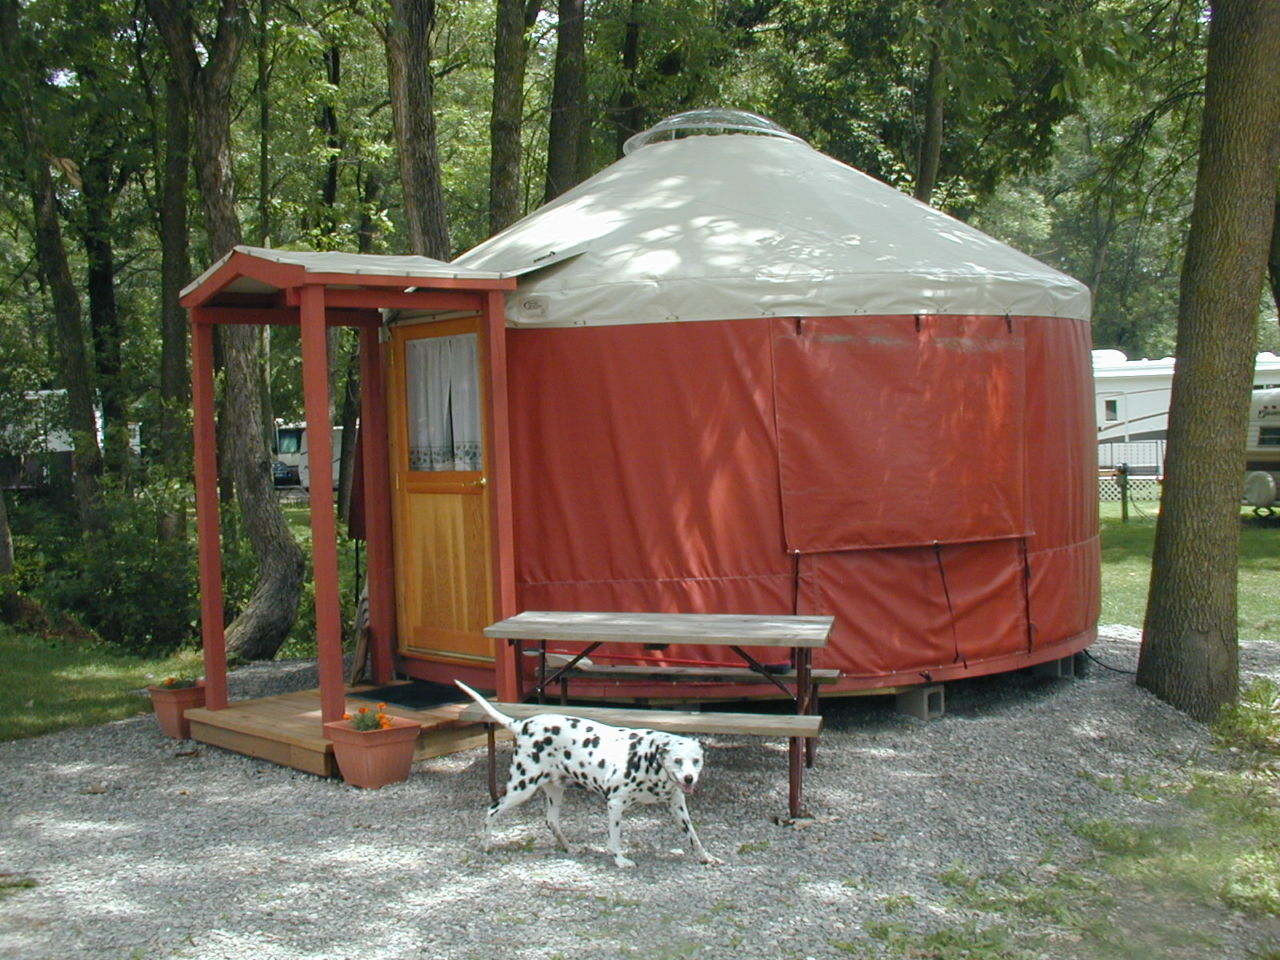 Red yurt at campground with dog in front